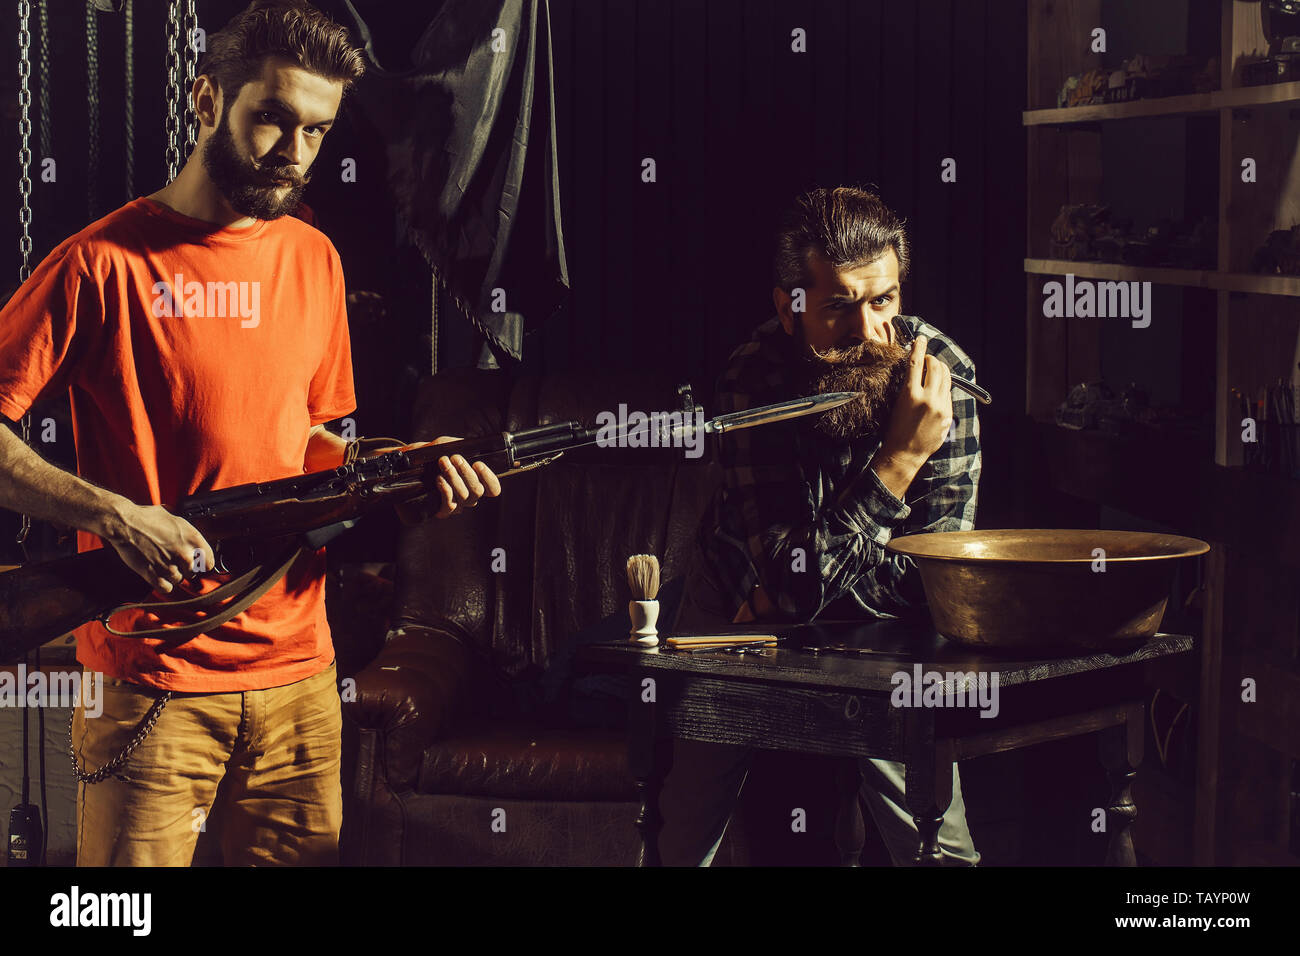 Two men, handsome, bearded hipsters, with beards and moustaches hold rifle with bayonet and razor with blade on dark background - Stock Image